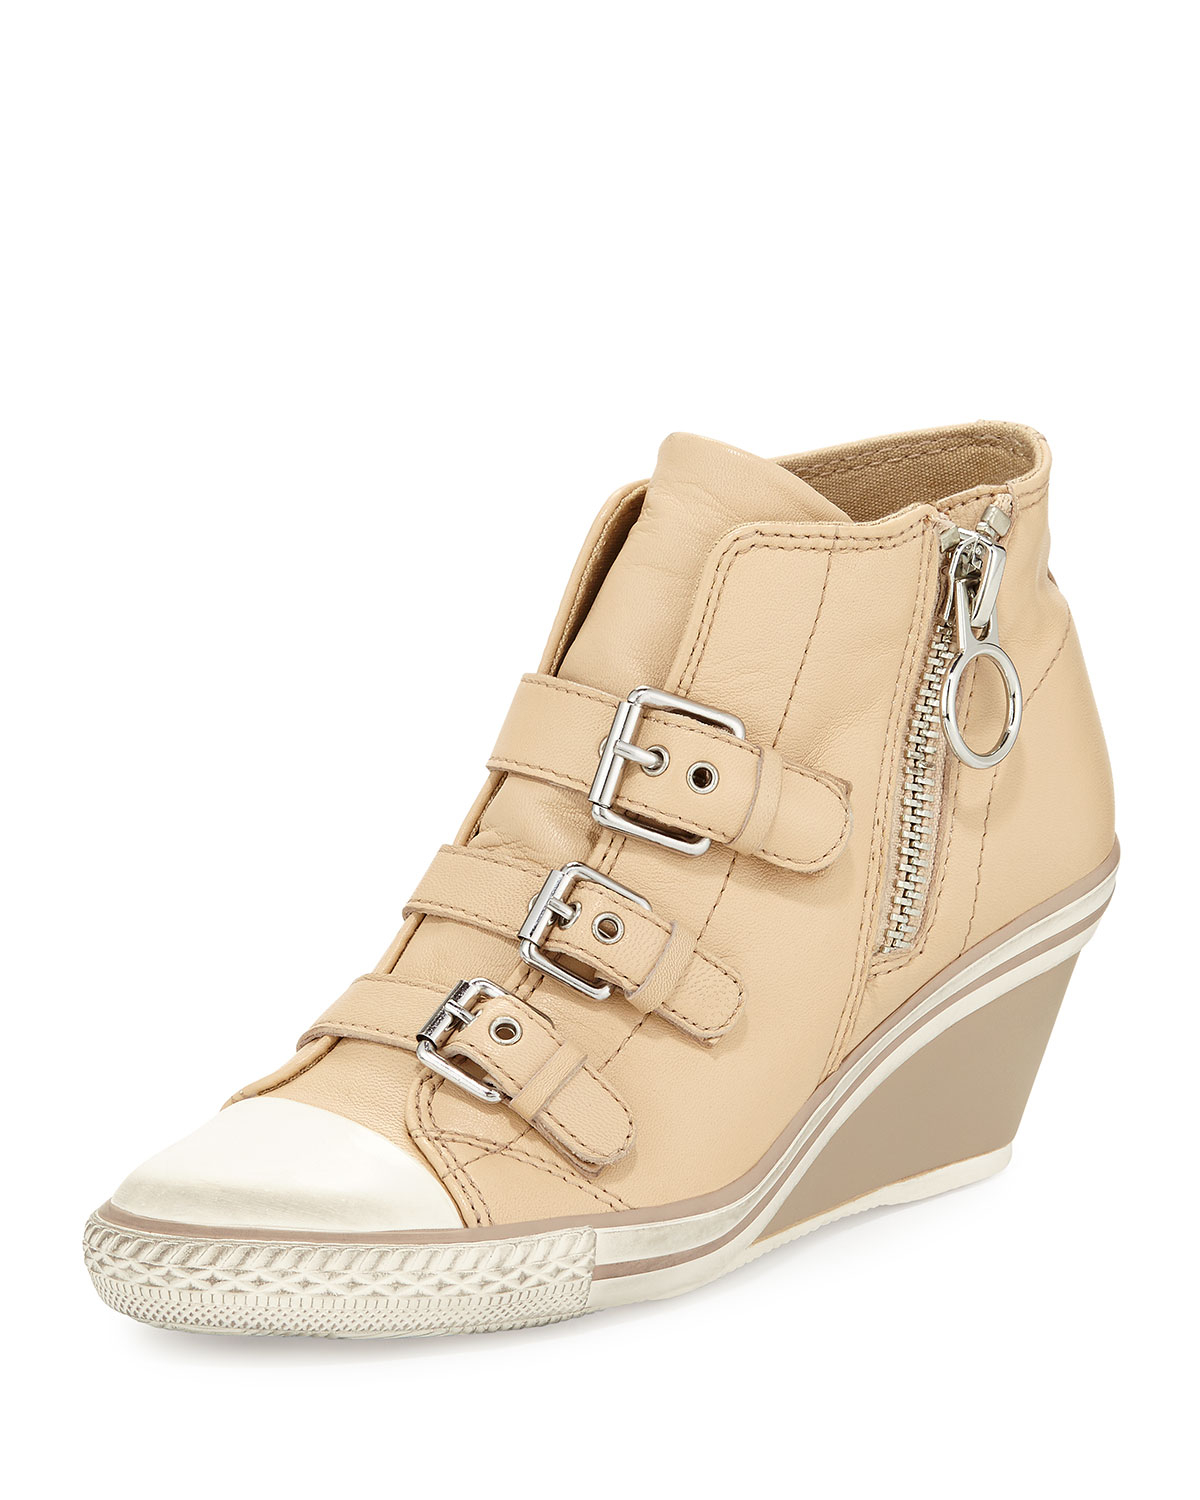 ash gin bis buckled leather wedge sneaker in brown lyst